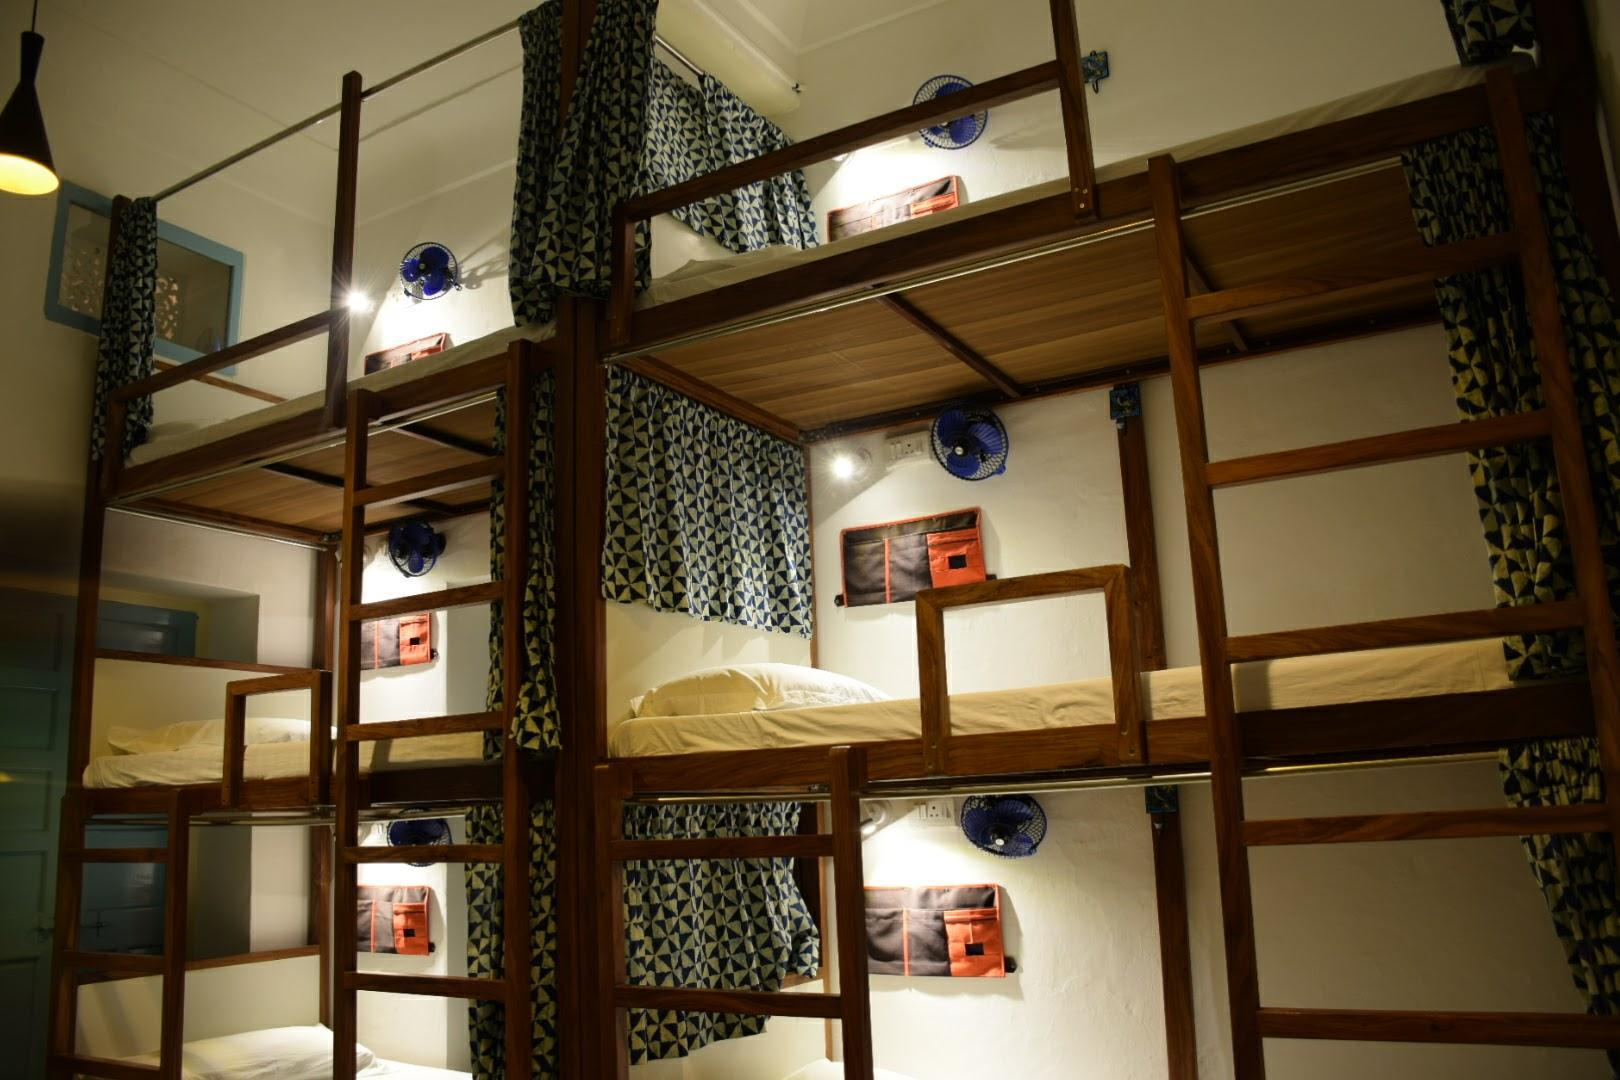 6床混合宿舍间 (6-Bed Mixed Dormitory Room)